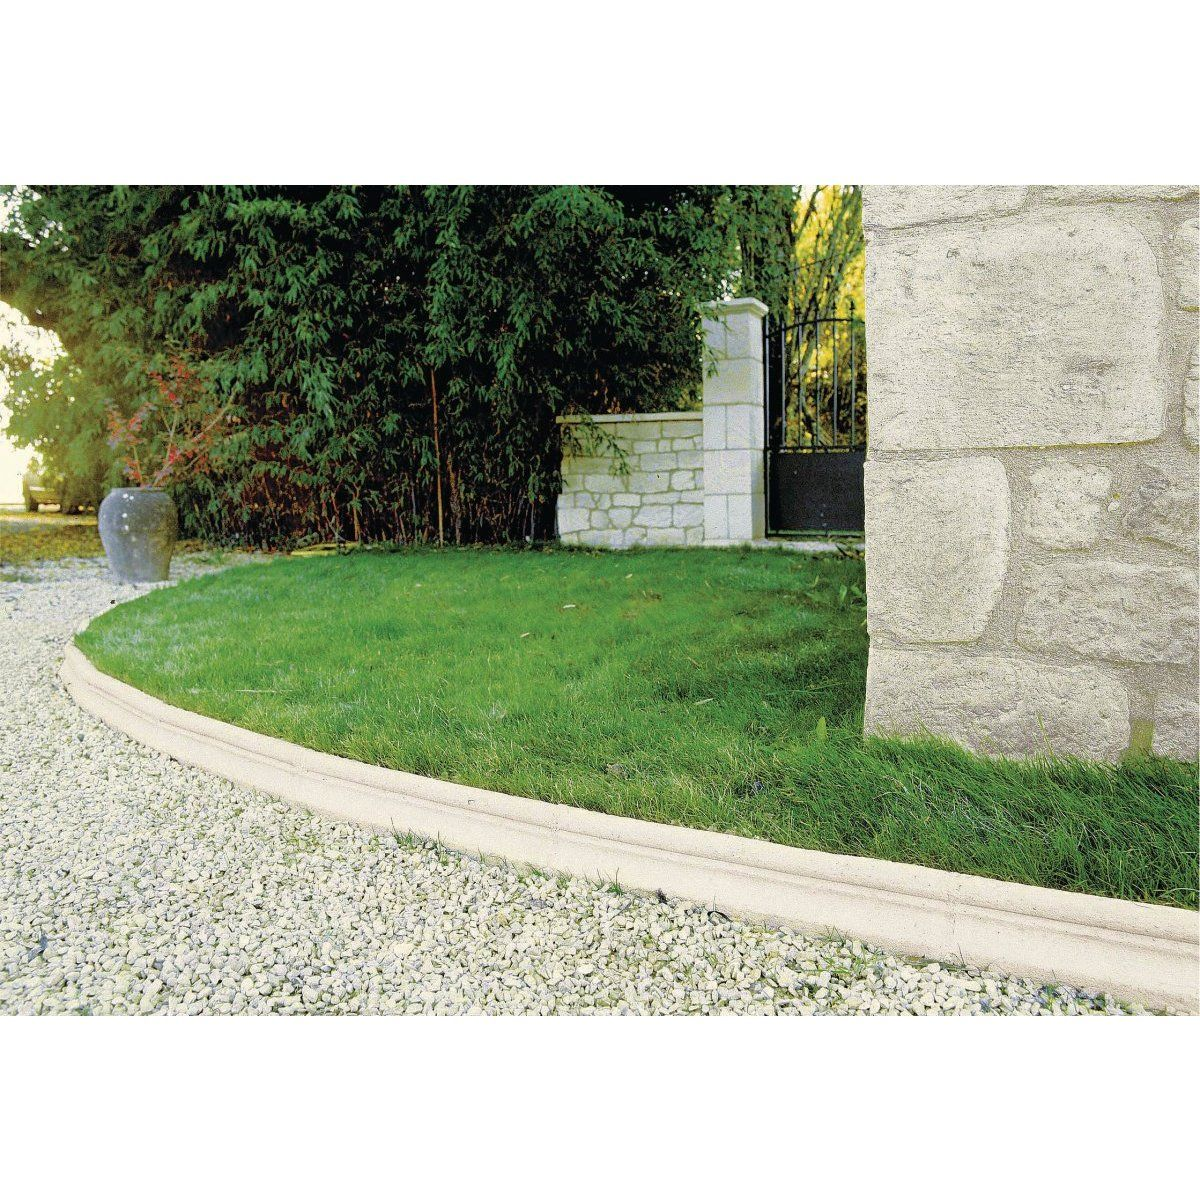 Bordure jardin pierre reconstitu e orsol ton pierre for Bordure de jardin en pierre naturelle